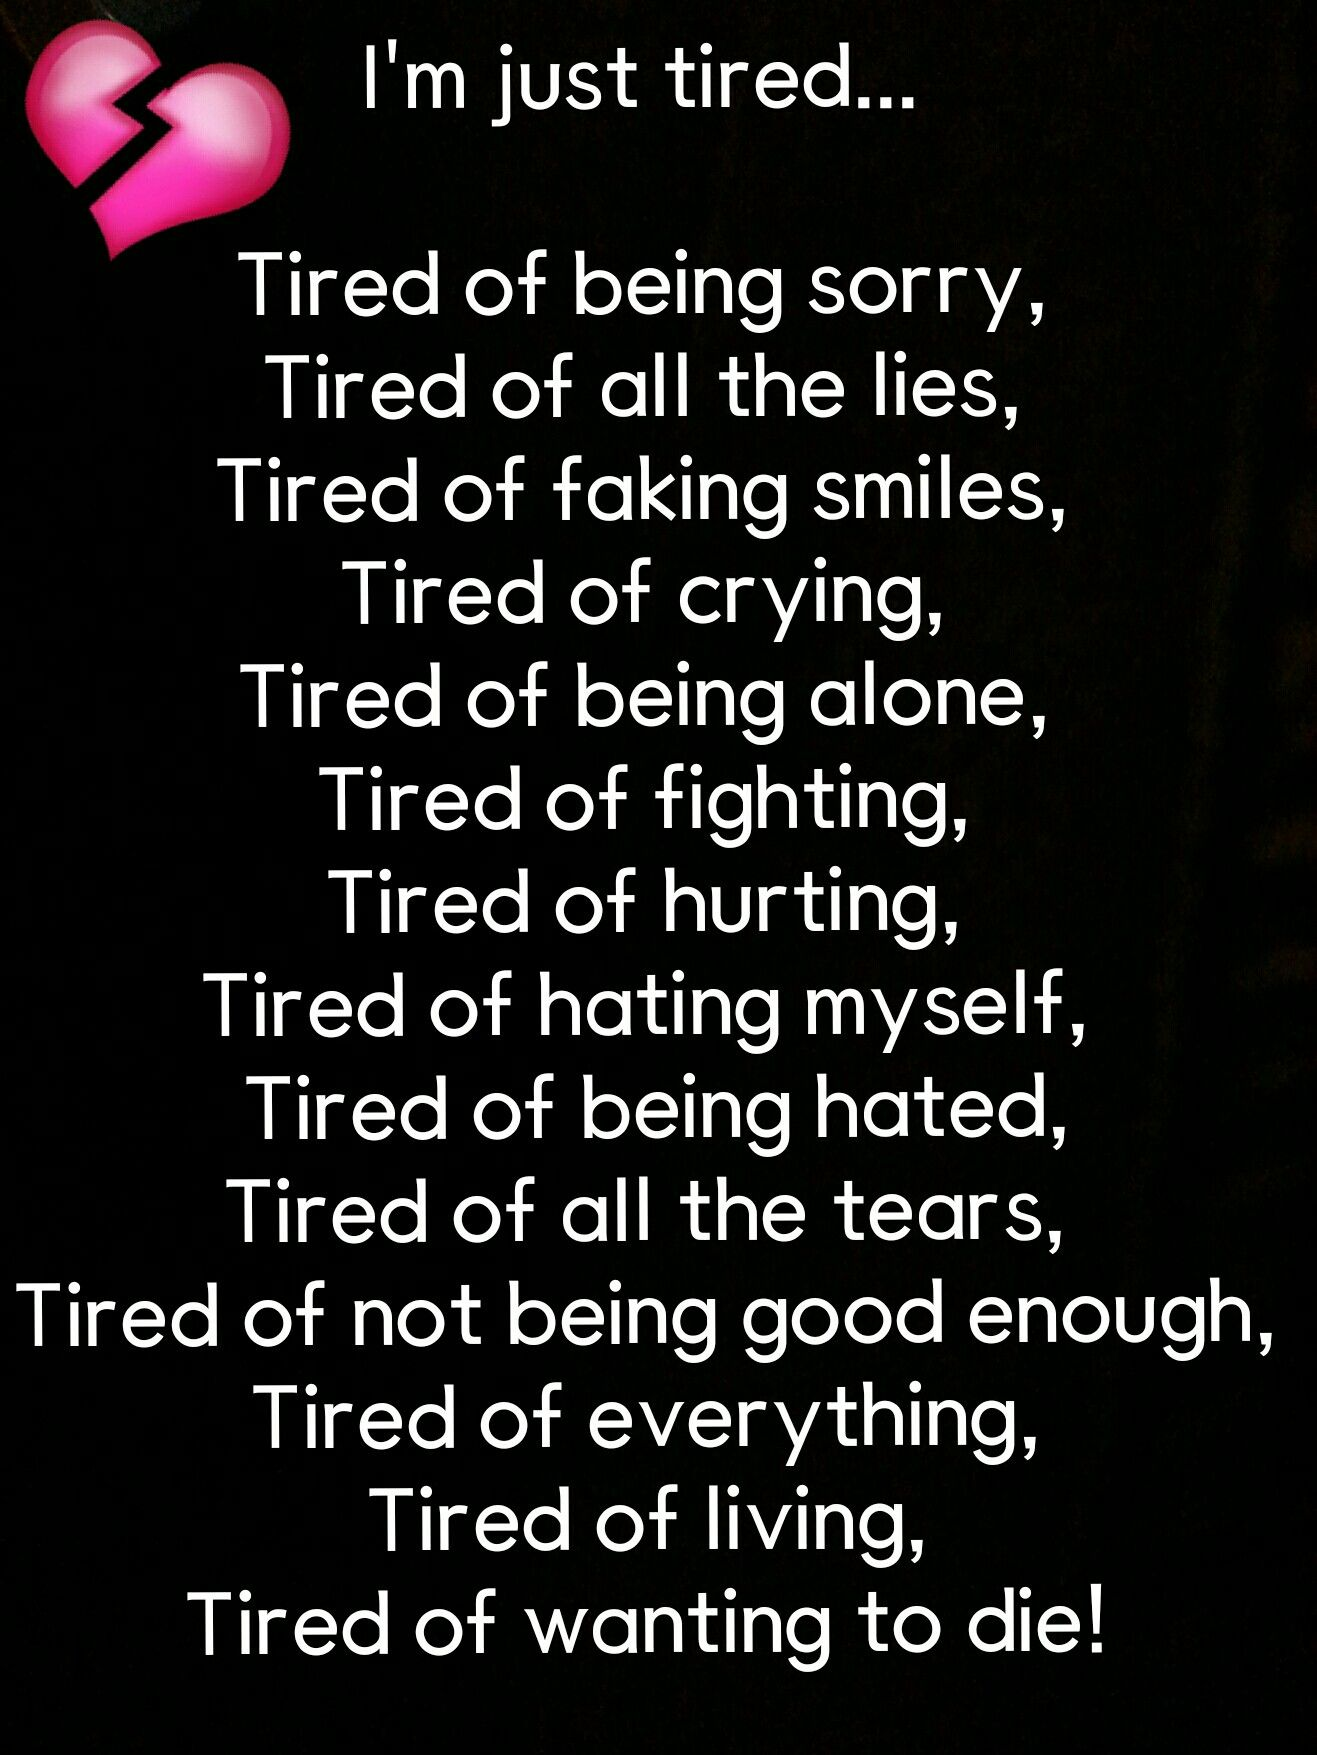 Depression Quotes About Being Alone Pinnobody On Depression Quotes  Pinterest  Depression Quotes